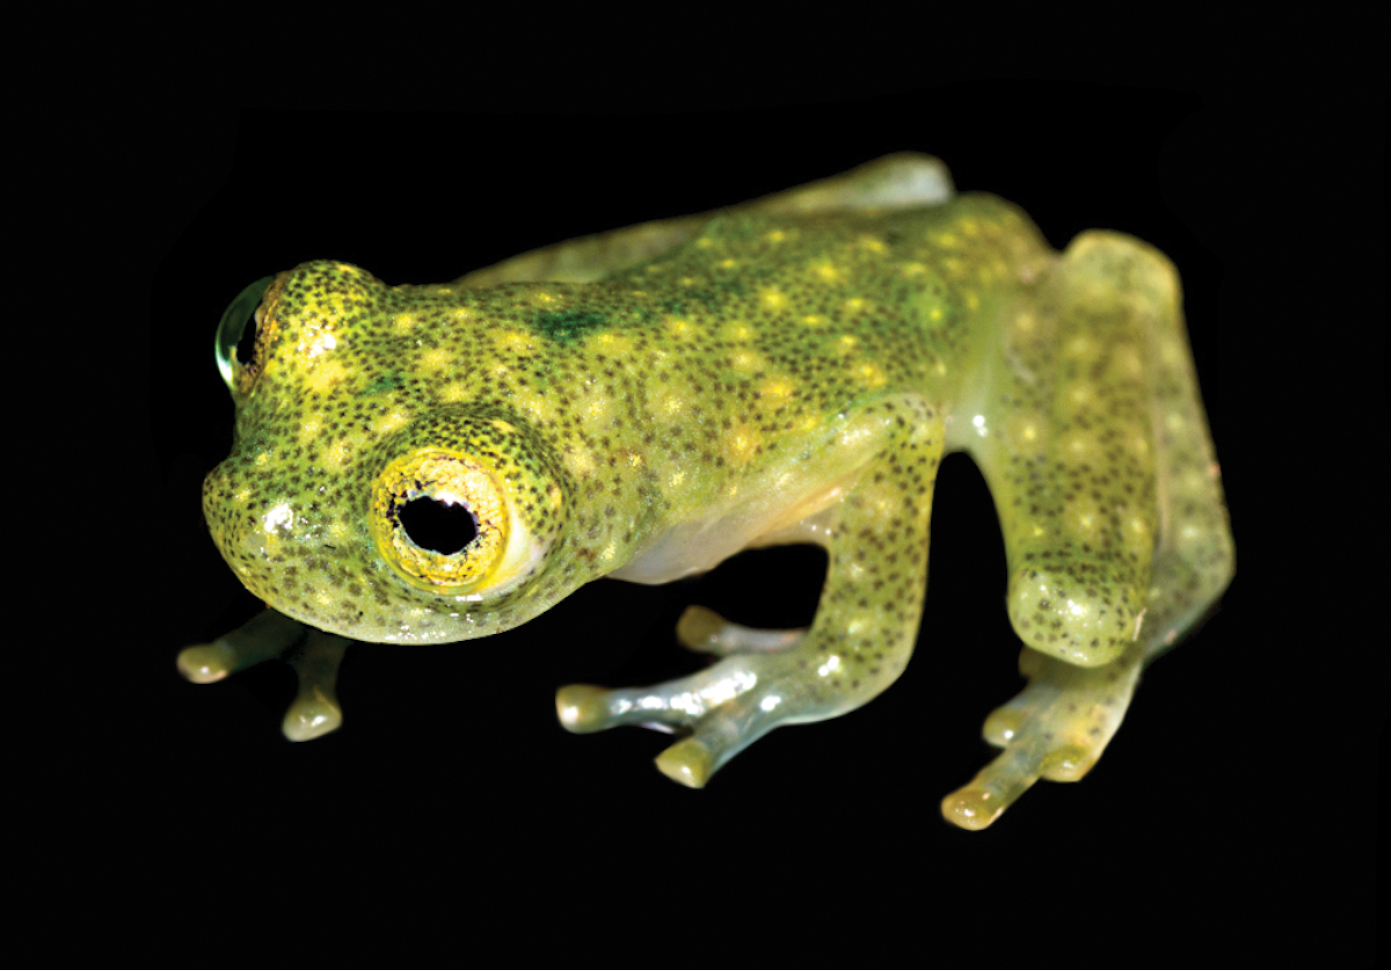 A marvelous new glassfrog from Amazonian Ecuador